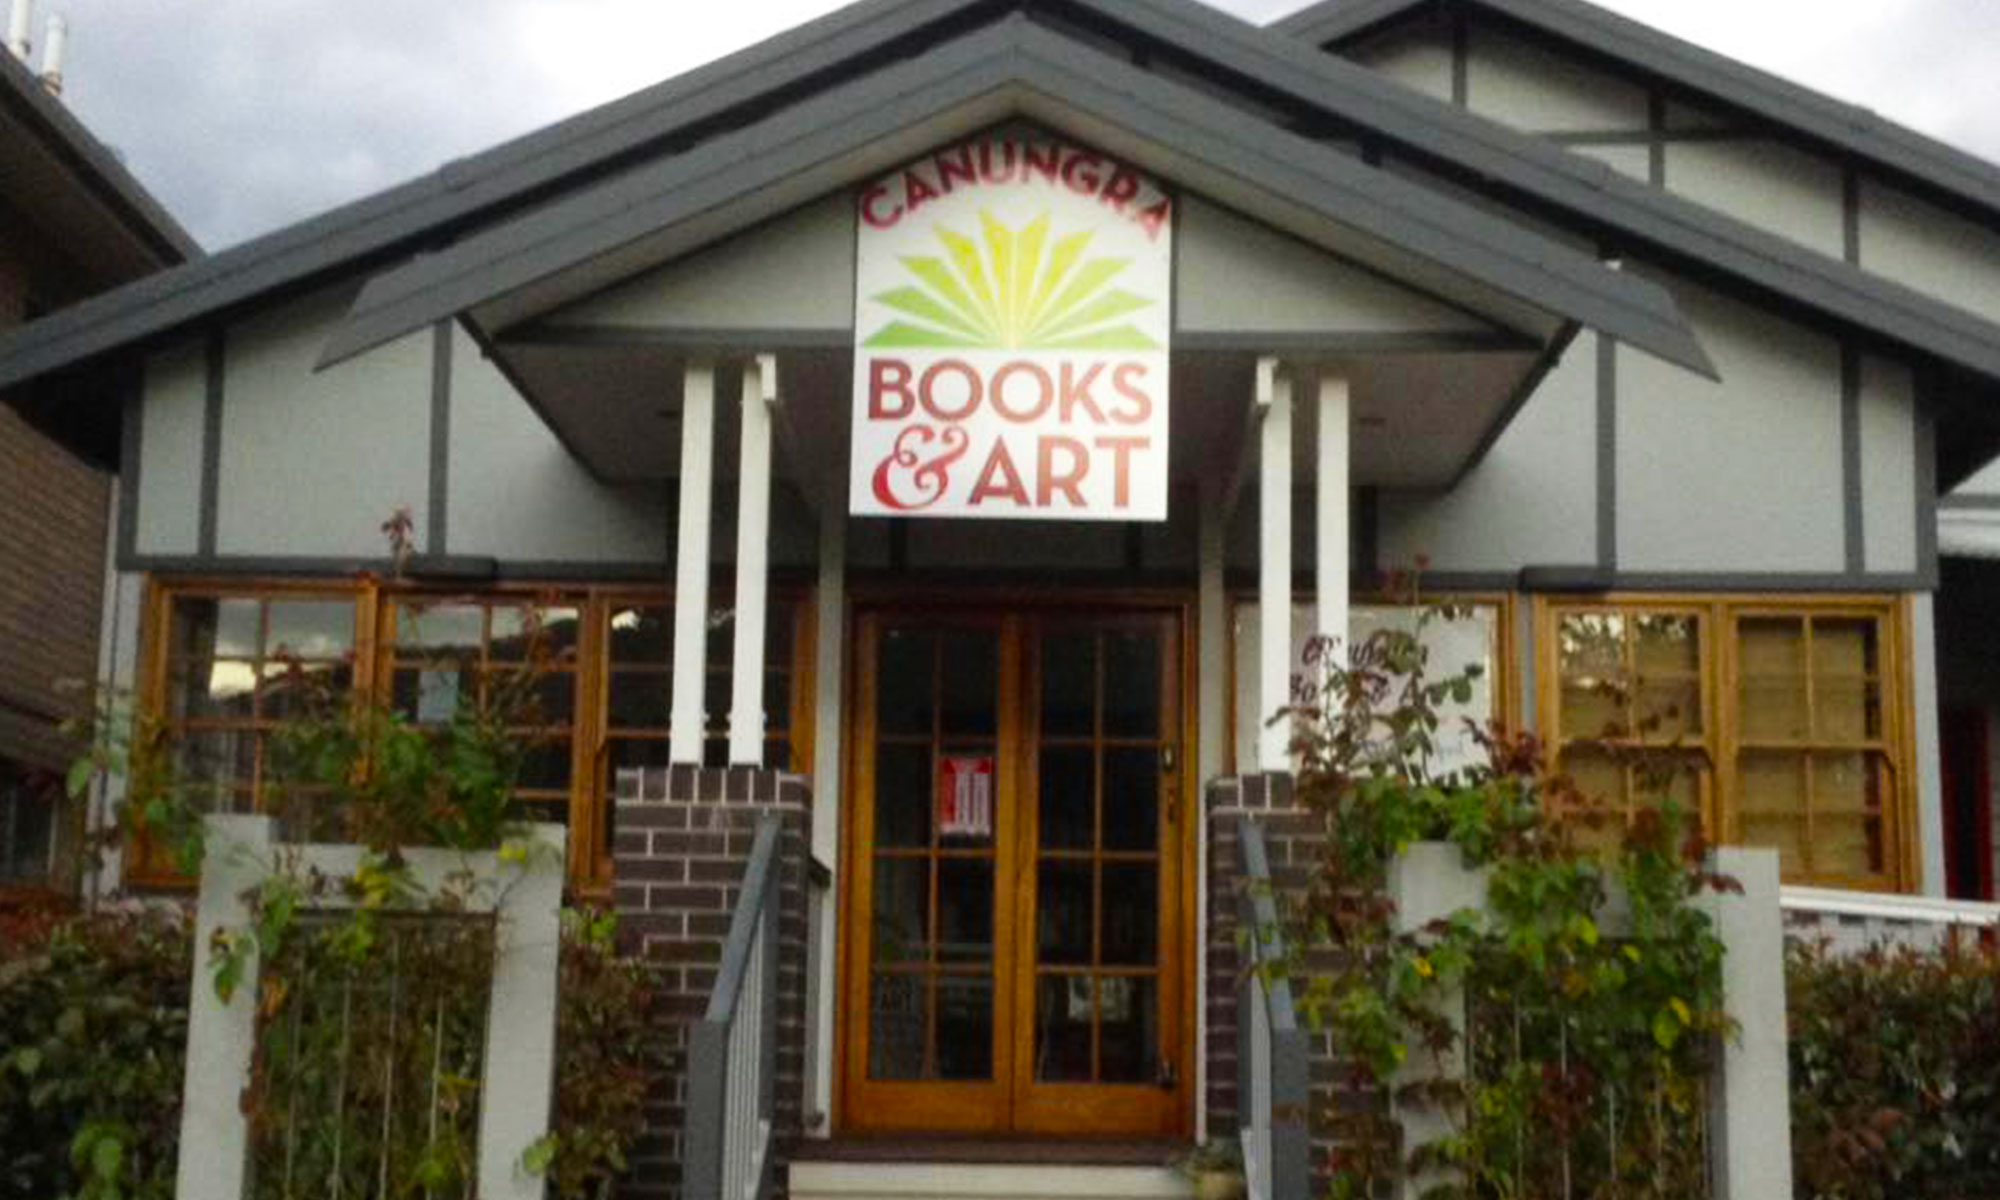 Canungra Books & Art